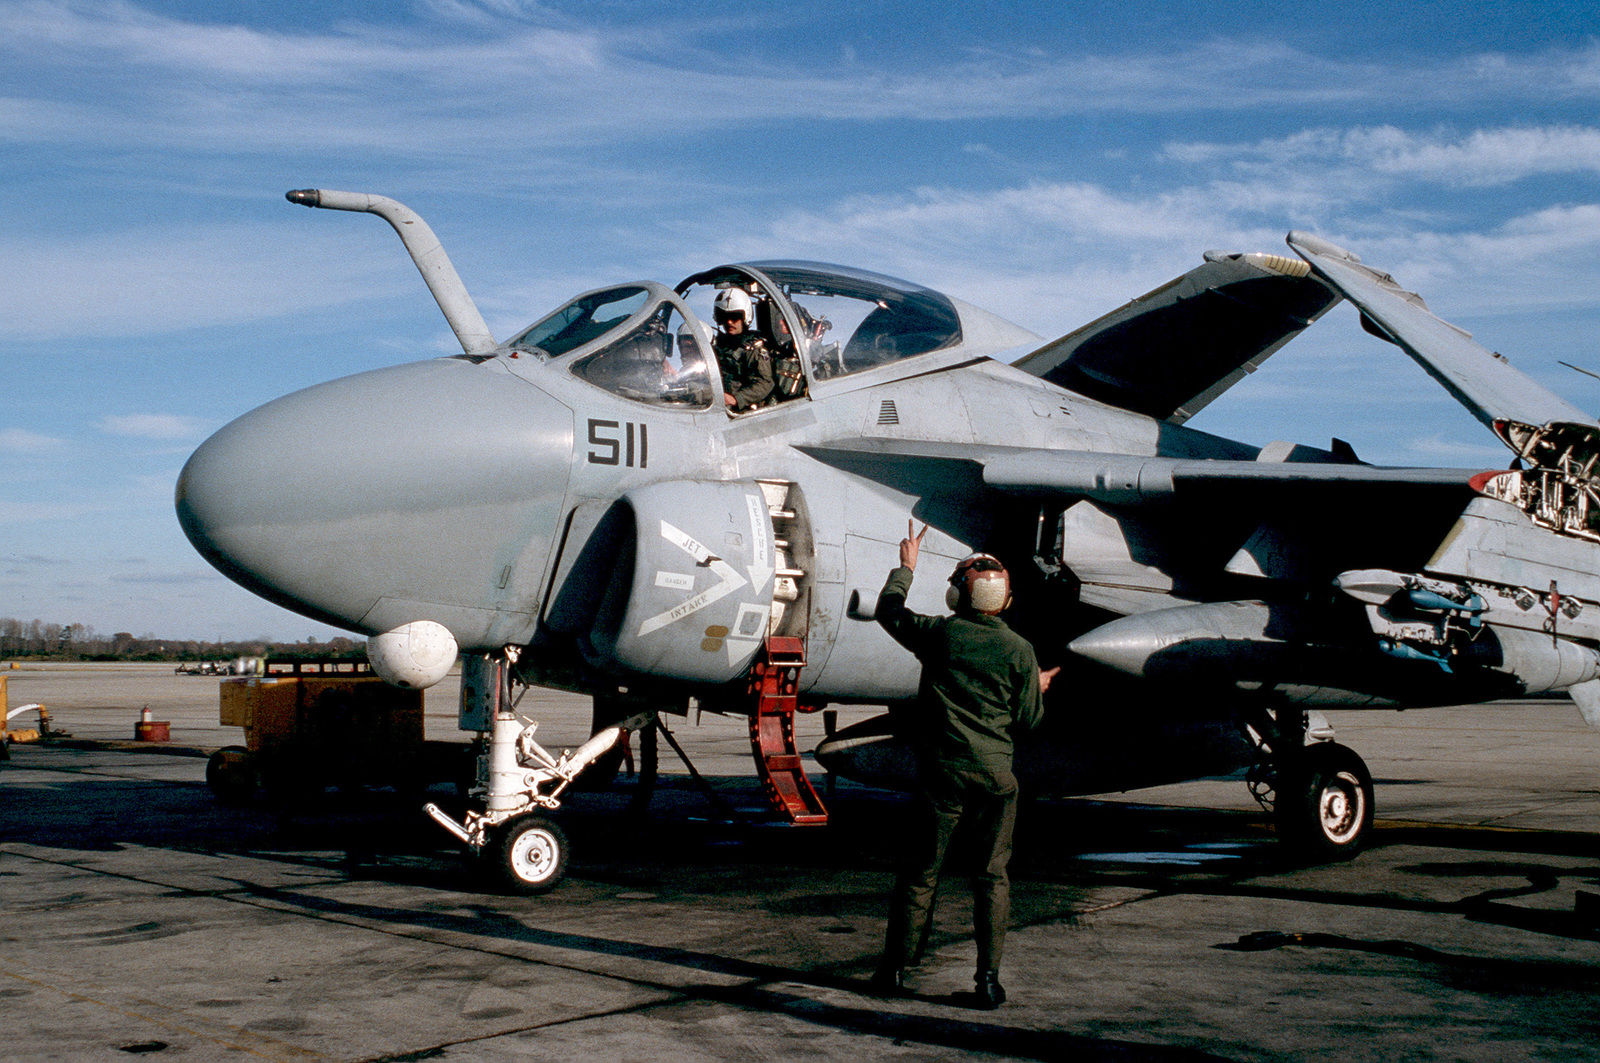 A ground crewman signals to the pilot of an A-6E Intruder aircraft from Attack Squadron 35 (VA-35) prior to a flight.  The aircraft is equipped with a Target Recognition and Attack Multisensor (TRAM) pod on the lower portion of its nose and carries Mark 76 Mod 5 practice bombs on its outboard wing pylon